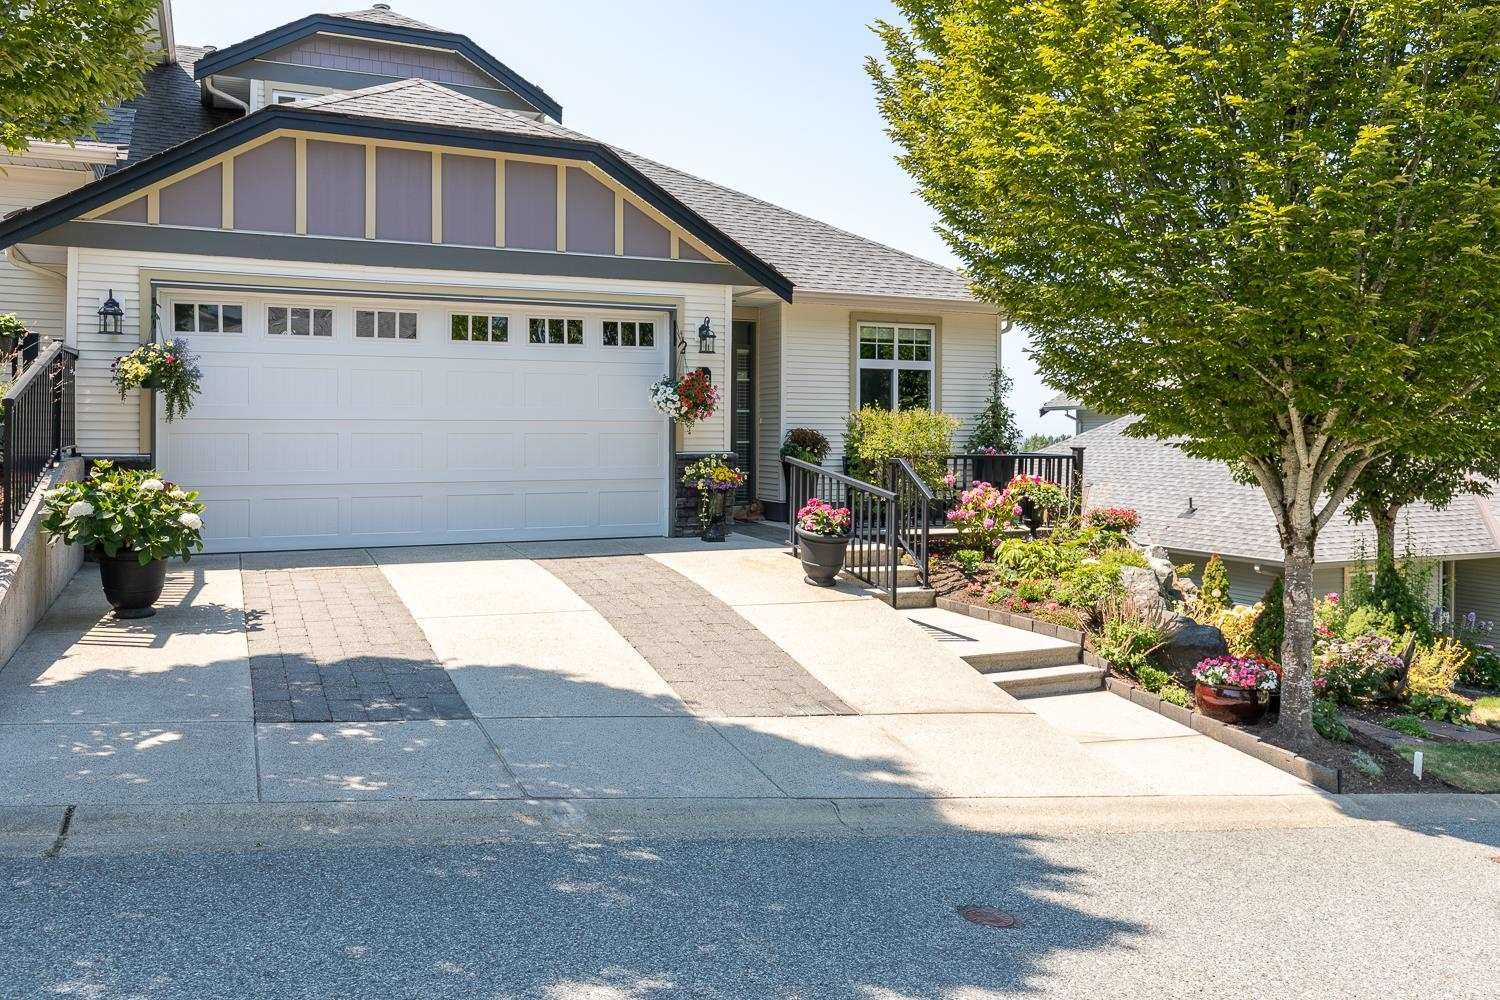 """Main Photo: 38 36260 MCKEE Road in Abbotsford: Abbotsford East Townhouse for sale in """"KING'S GATE"""" : MLS®# R2606381"""